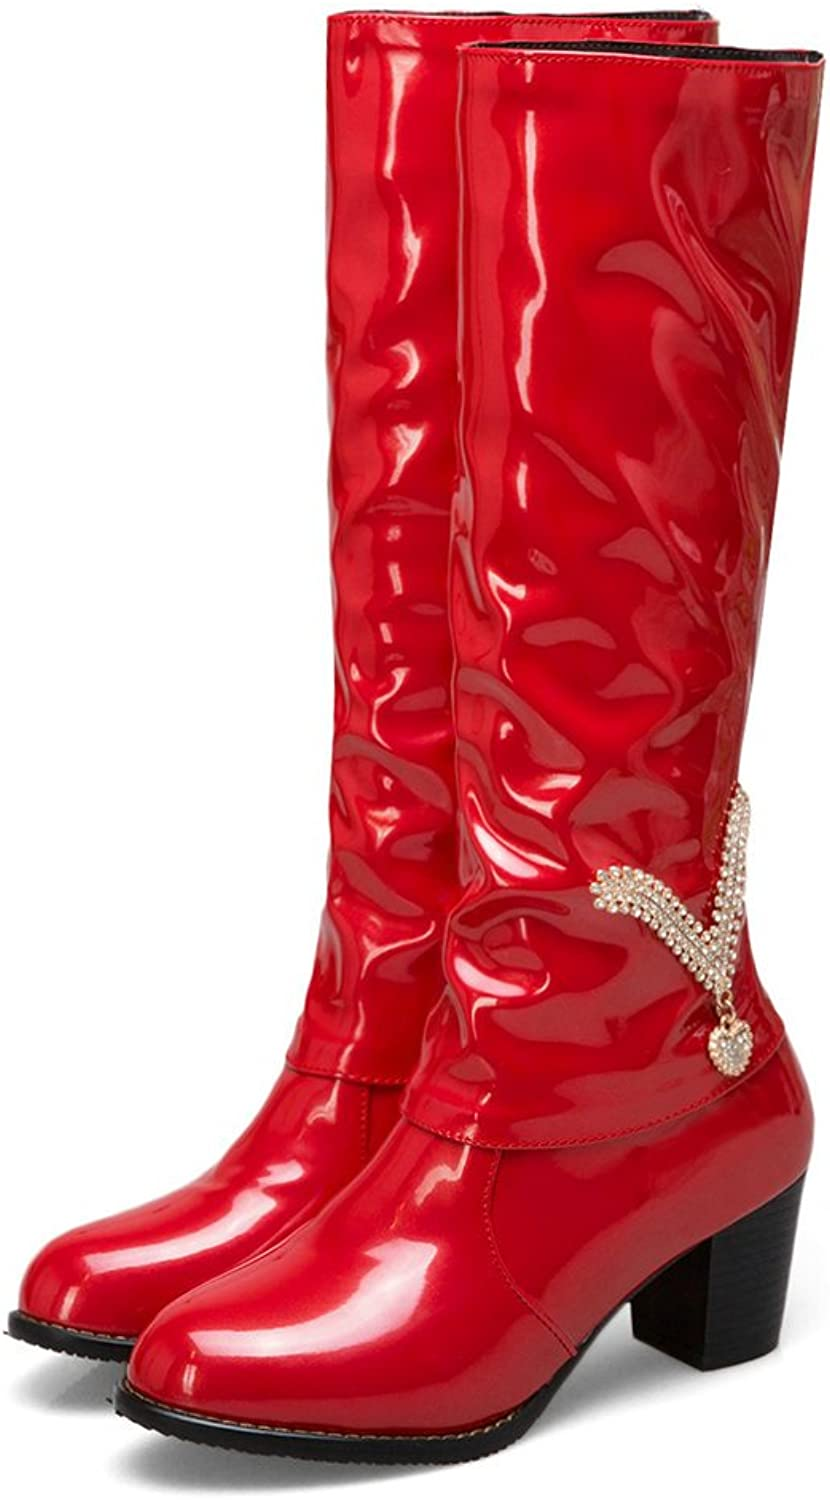 AnMengXinLing Knee High Boots Women Block Mid Heel Patent Leather Fashion Crystal Party Wedding Dress Booties Winter